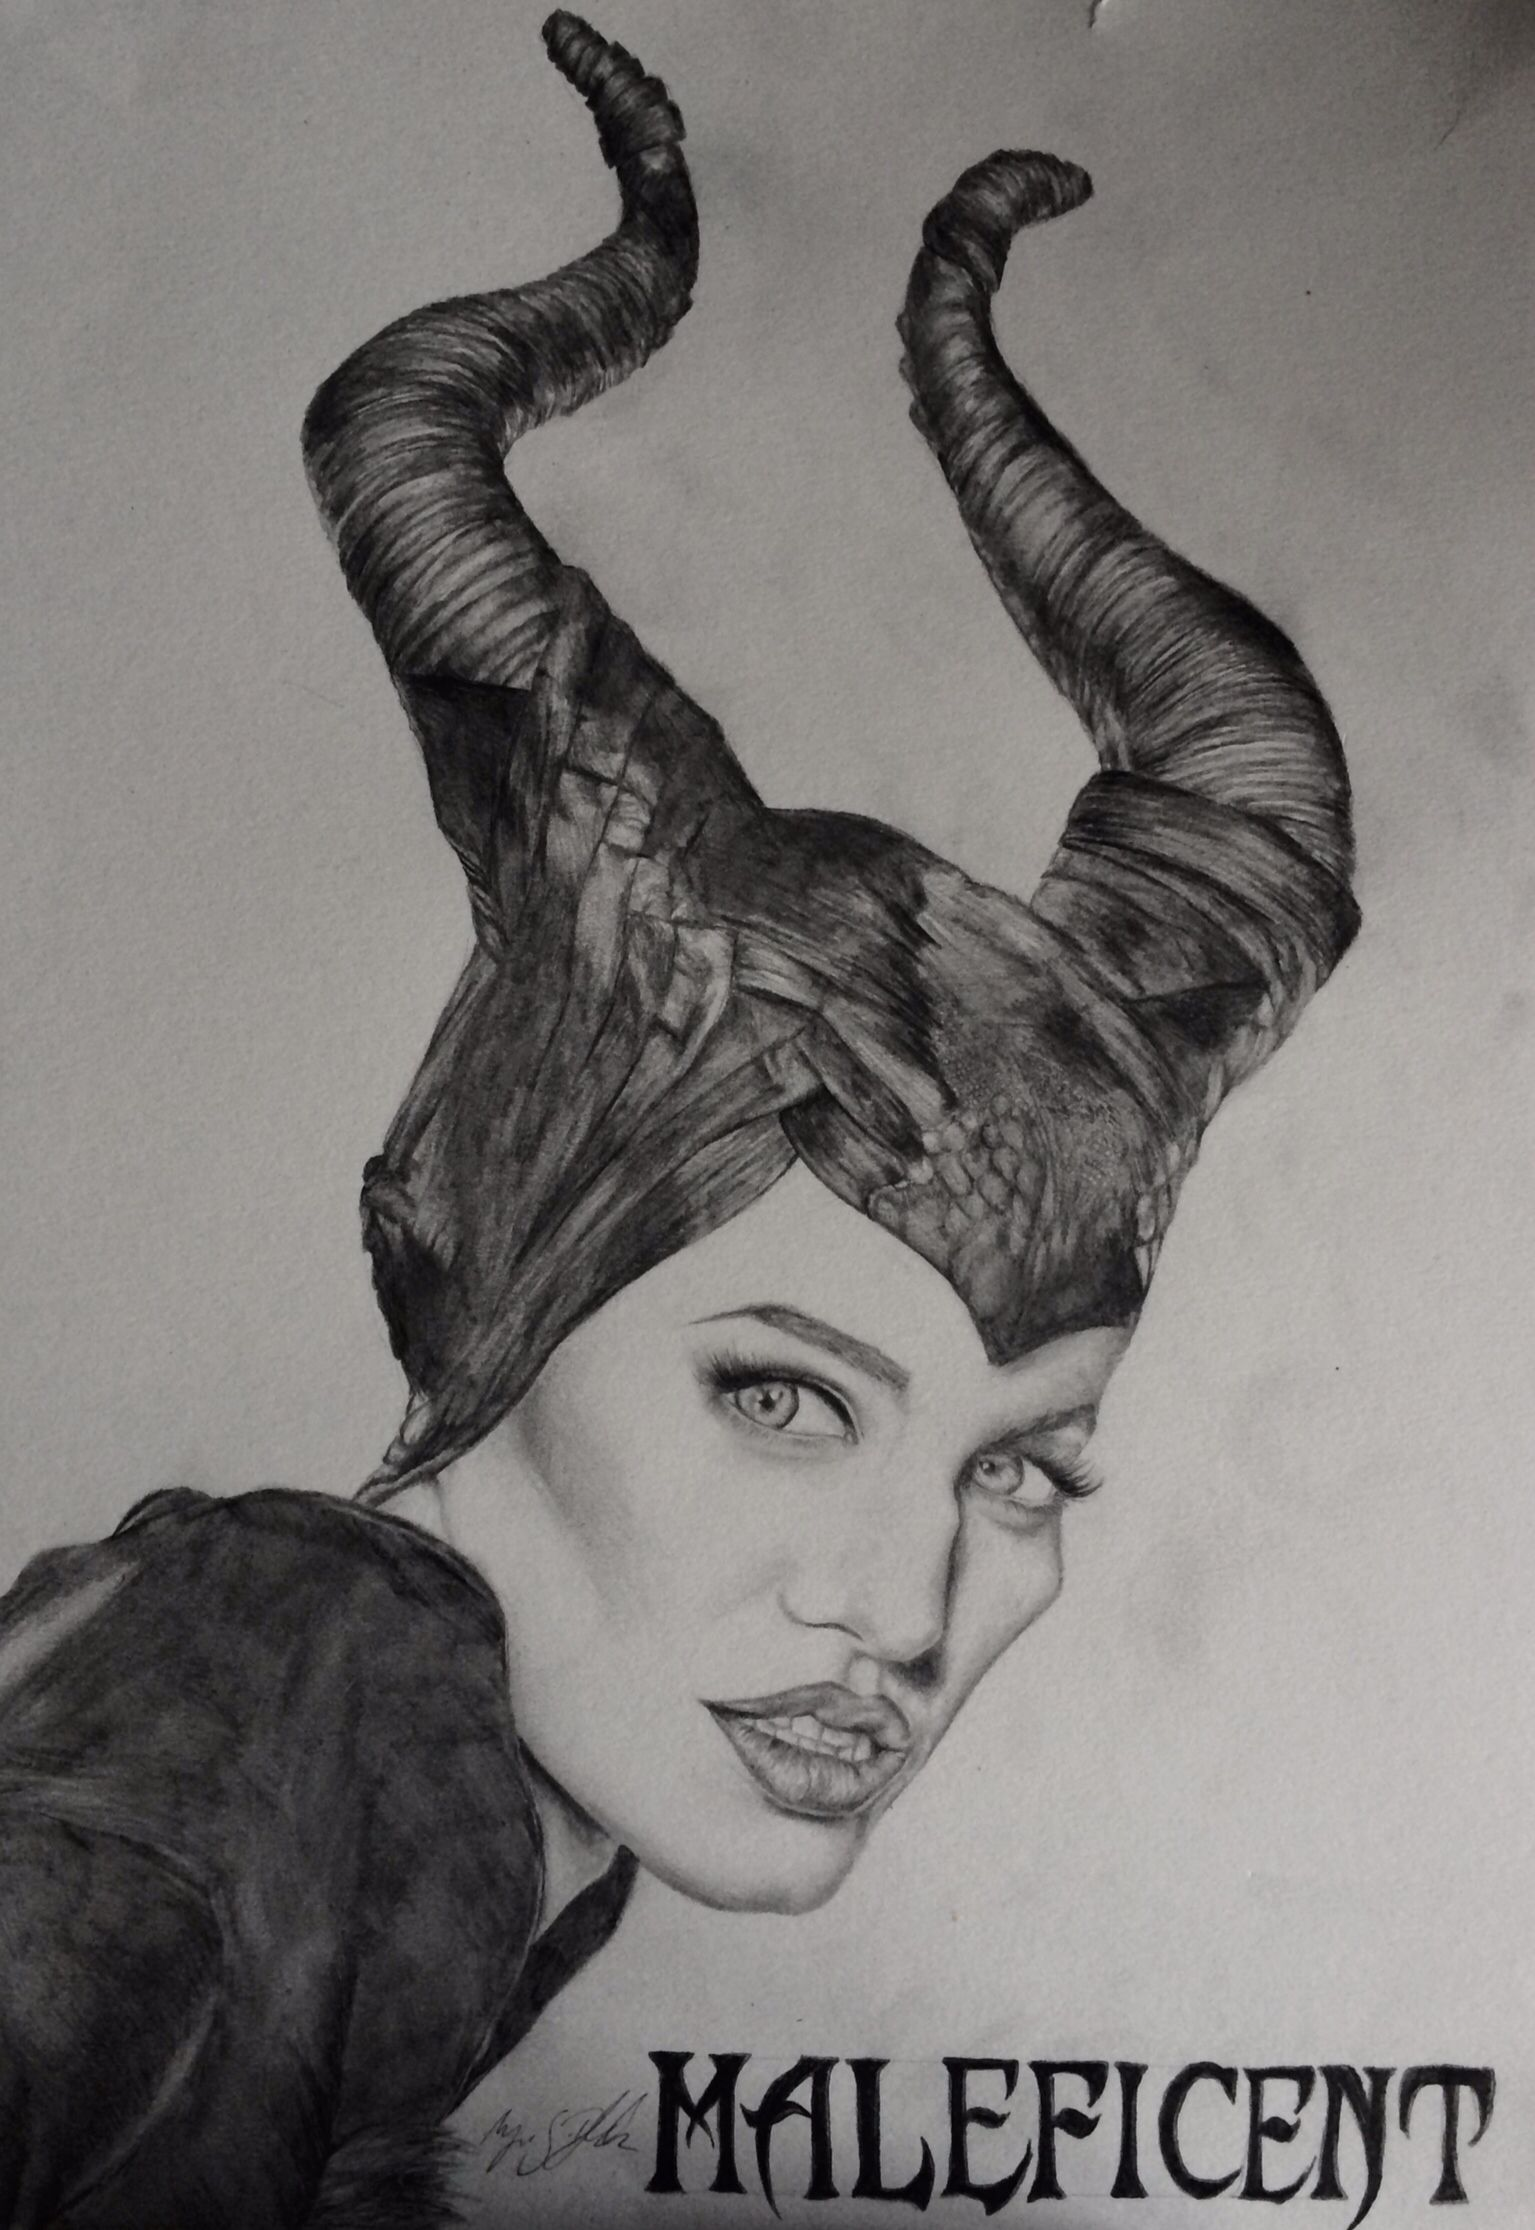 Drawing of Maleficent (Angelina Jolie)